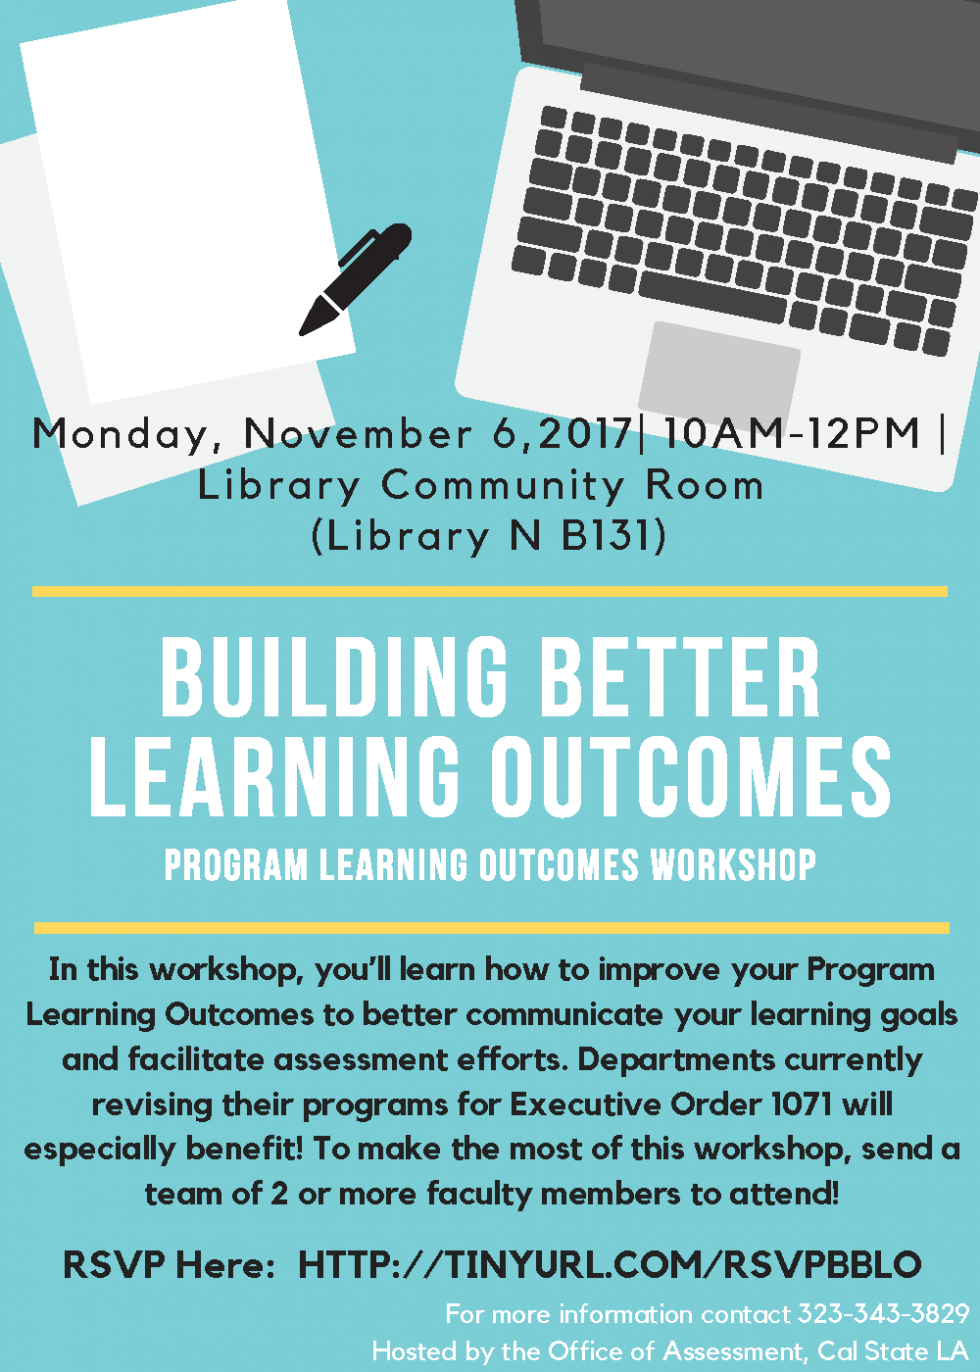 Flyer for Building Better Learning Outcomes